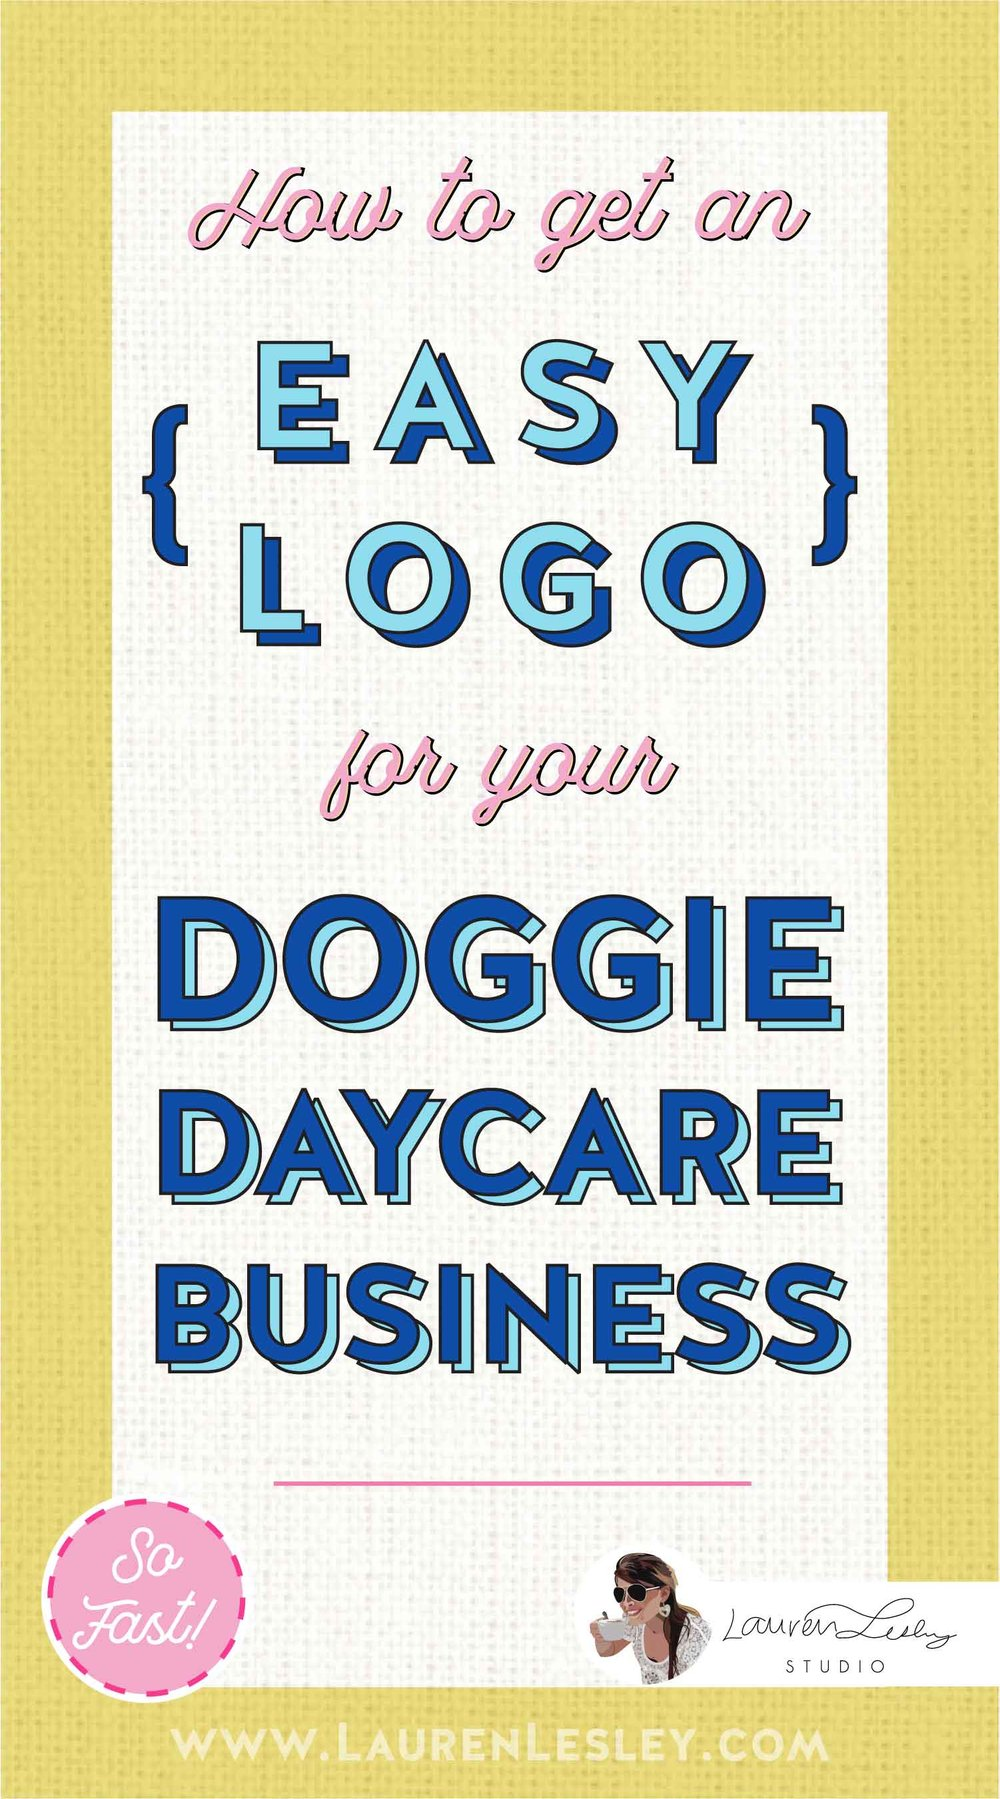 Get a Custom Doggie Daycare Logo for your Business